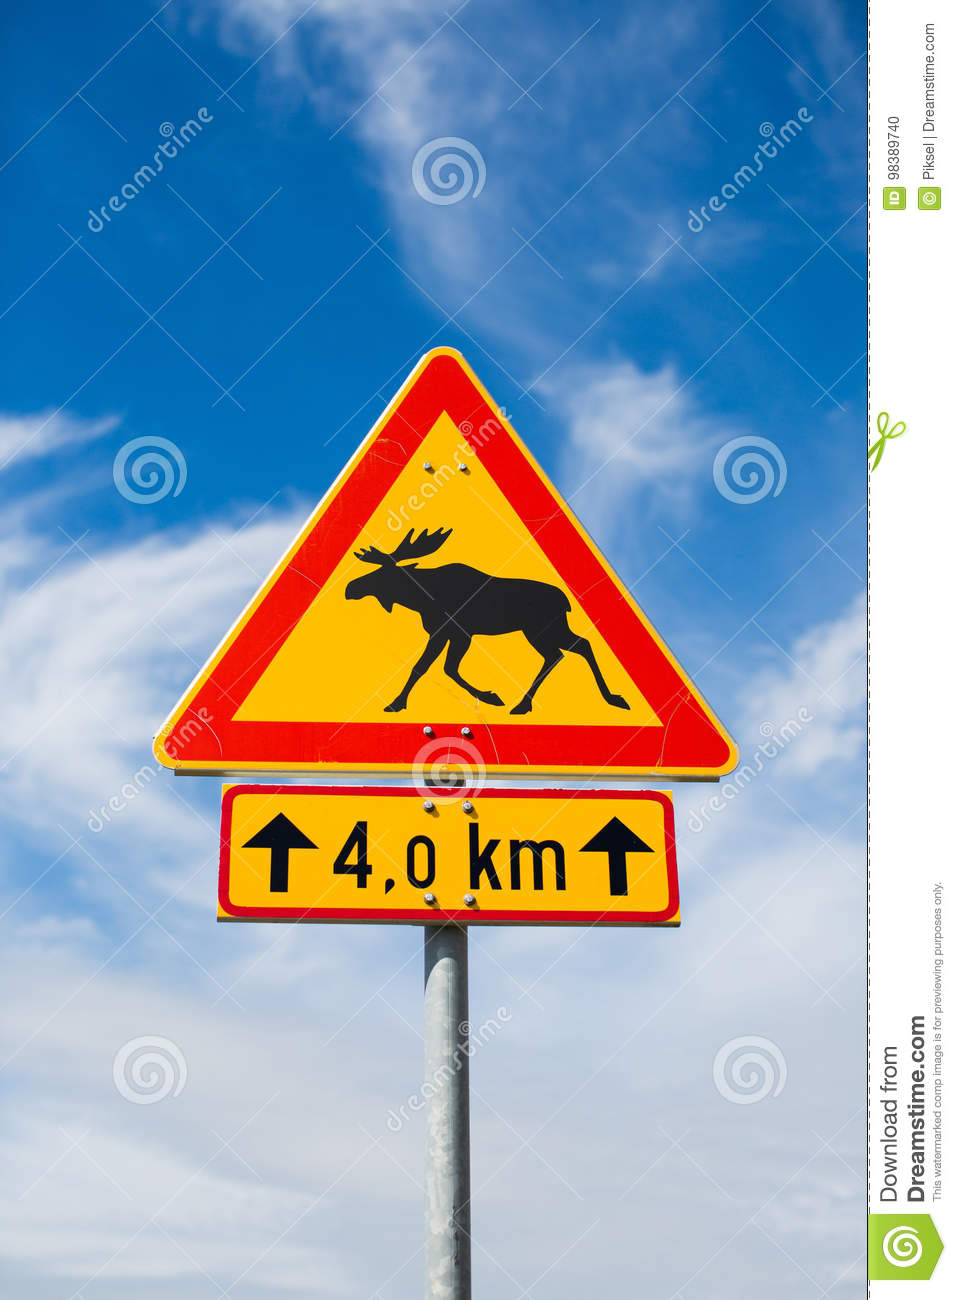 Moose on a road sign